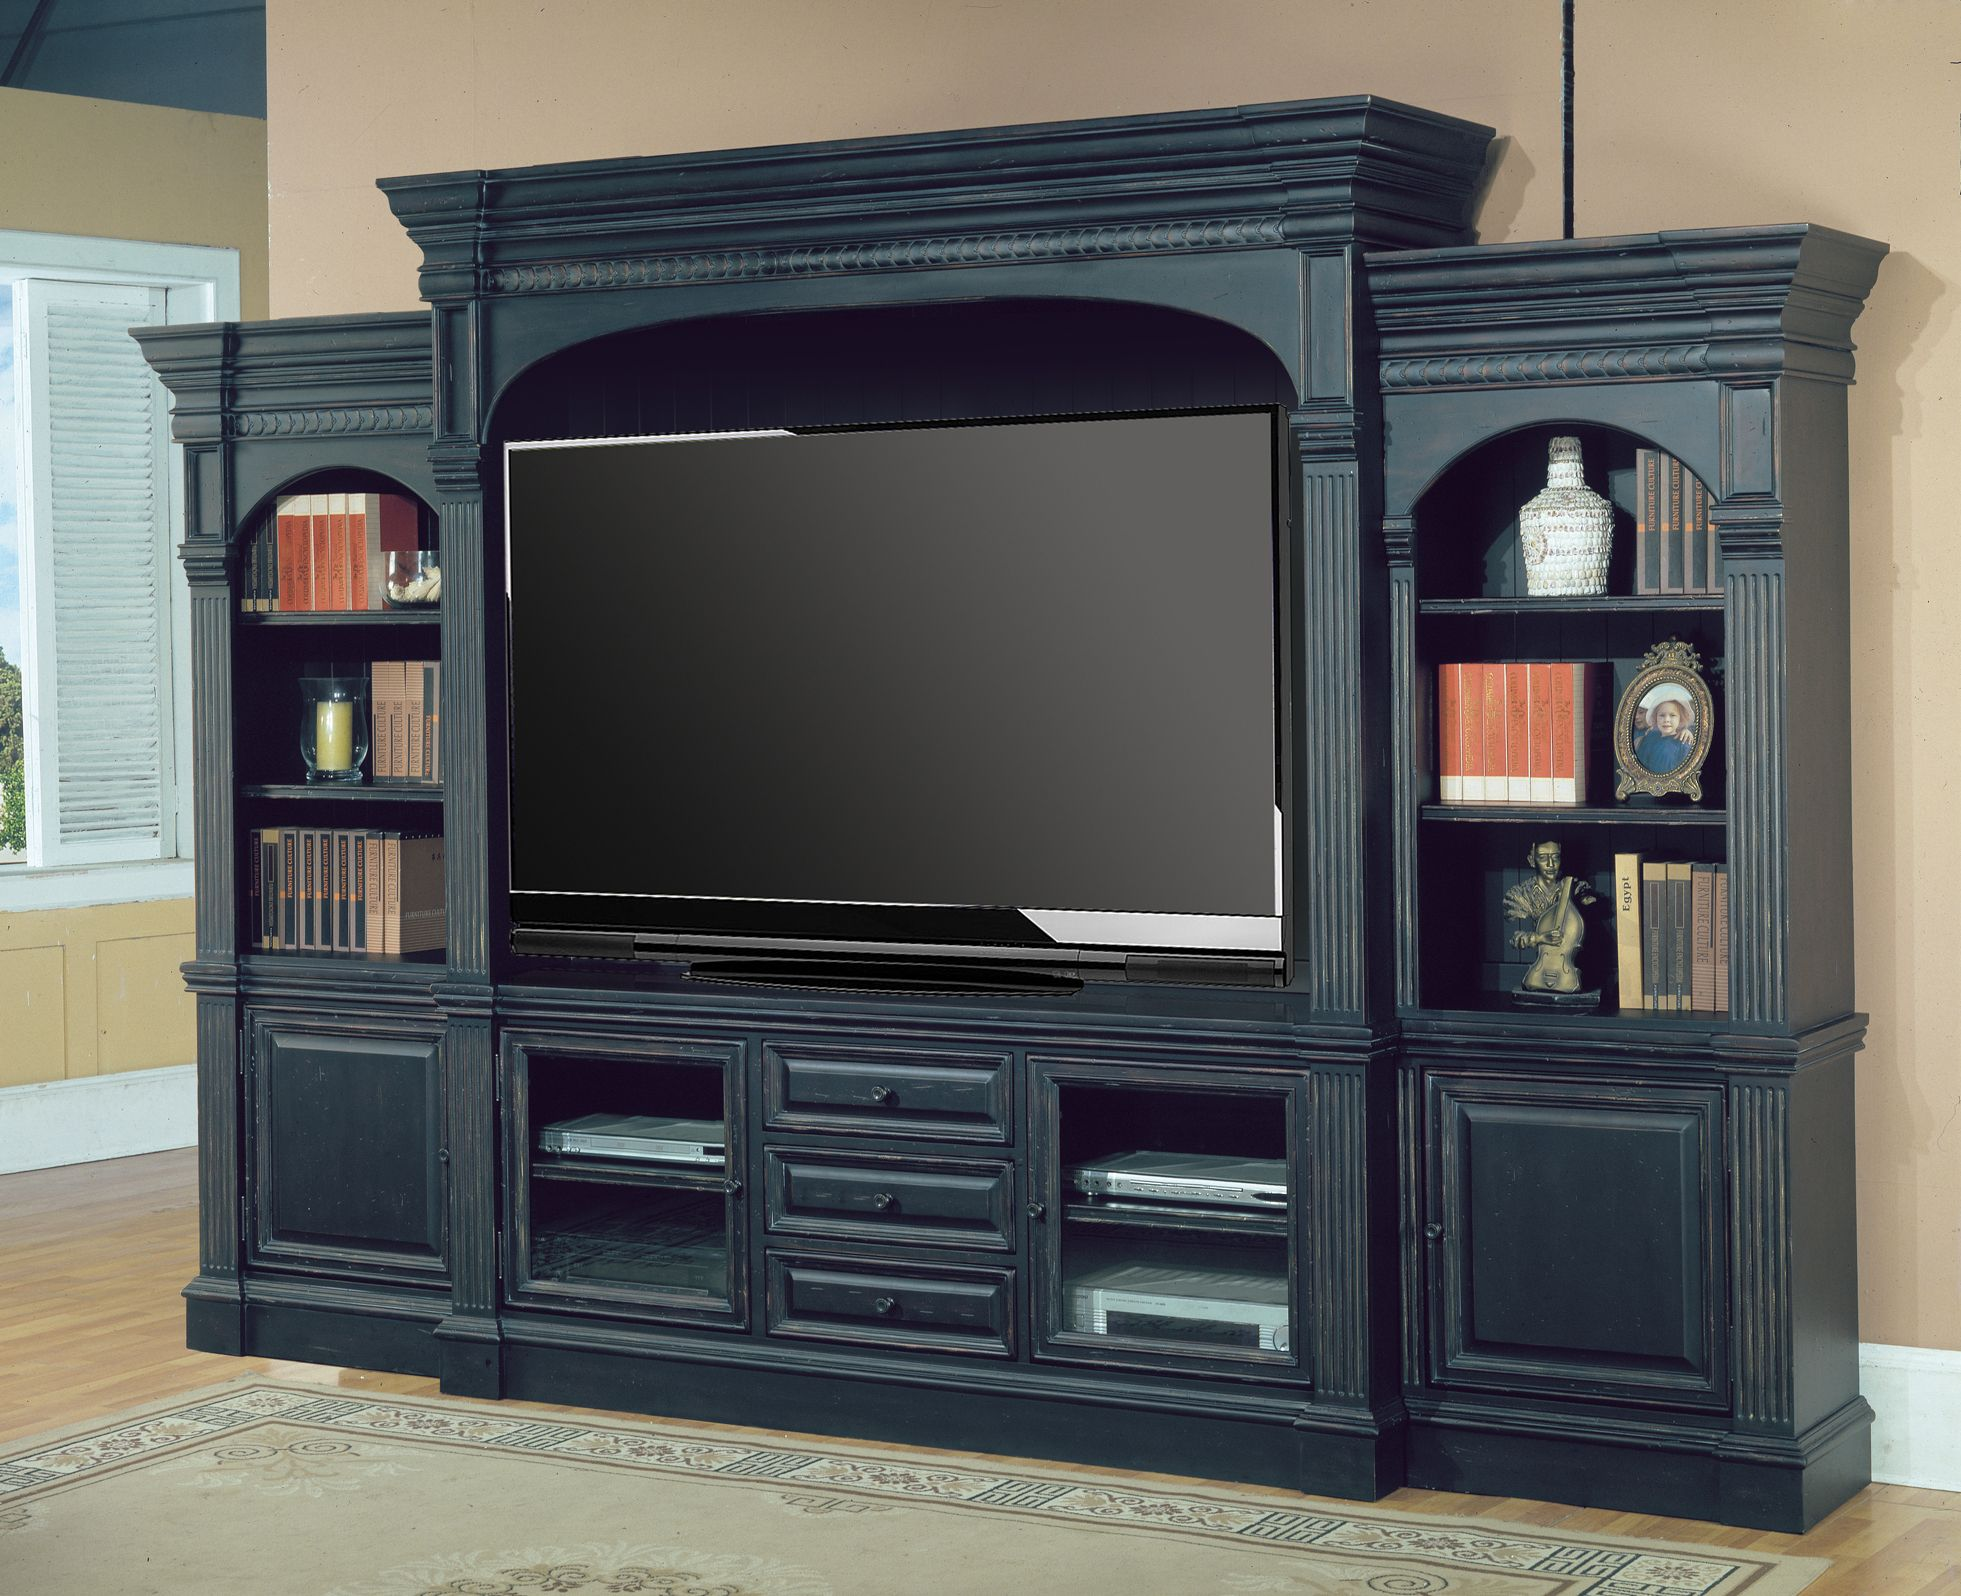 black wall units for living room early american furniture entertainment center venezia 77 5pc unit in vintage finish